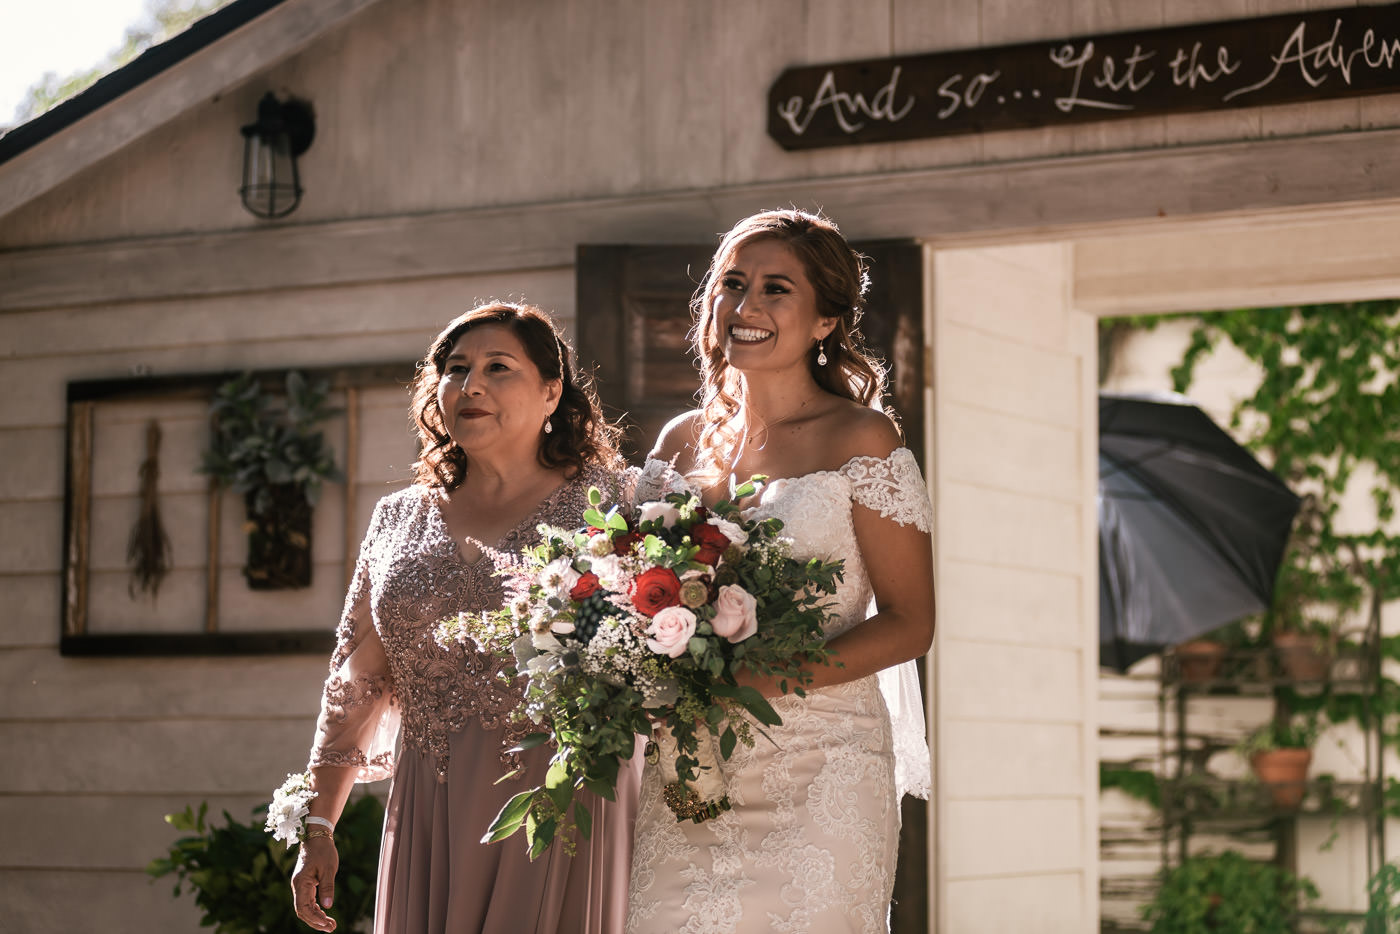 Bride makes her entrance with her mother and walks down the aisle.